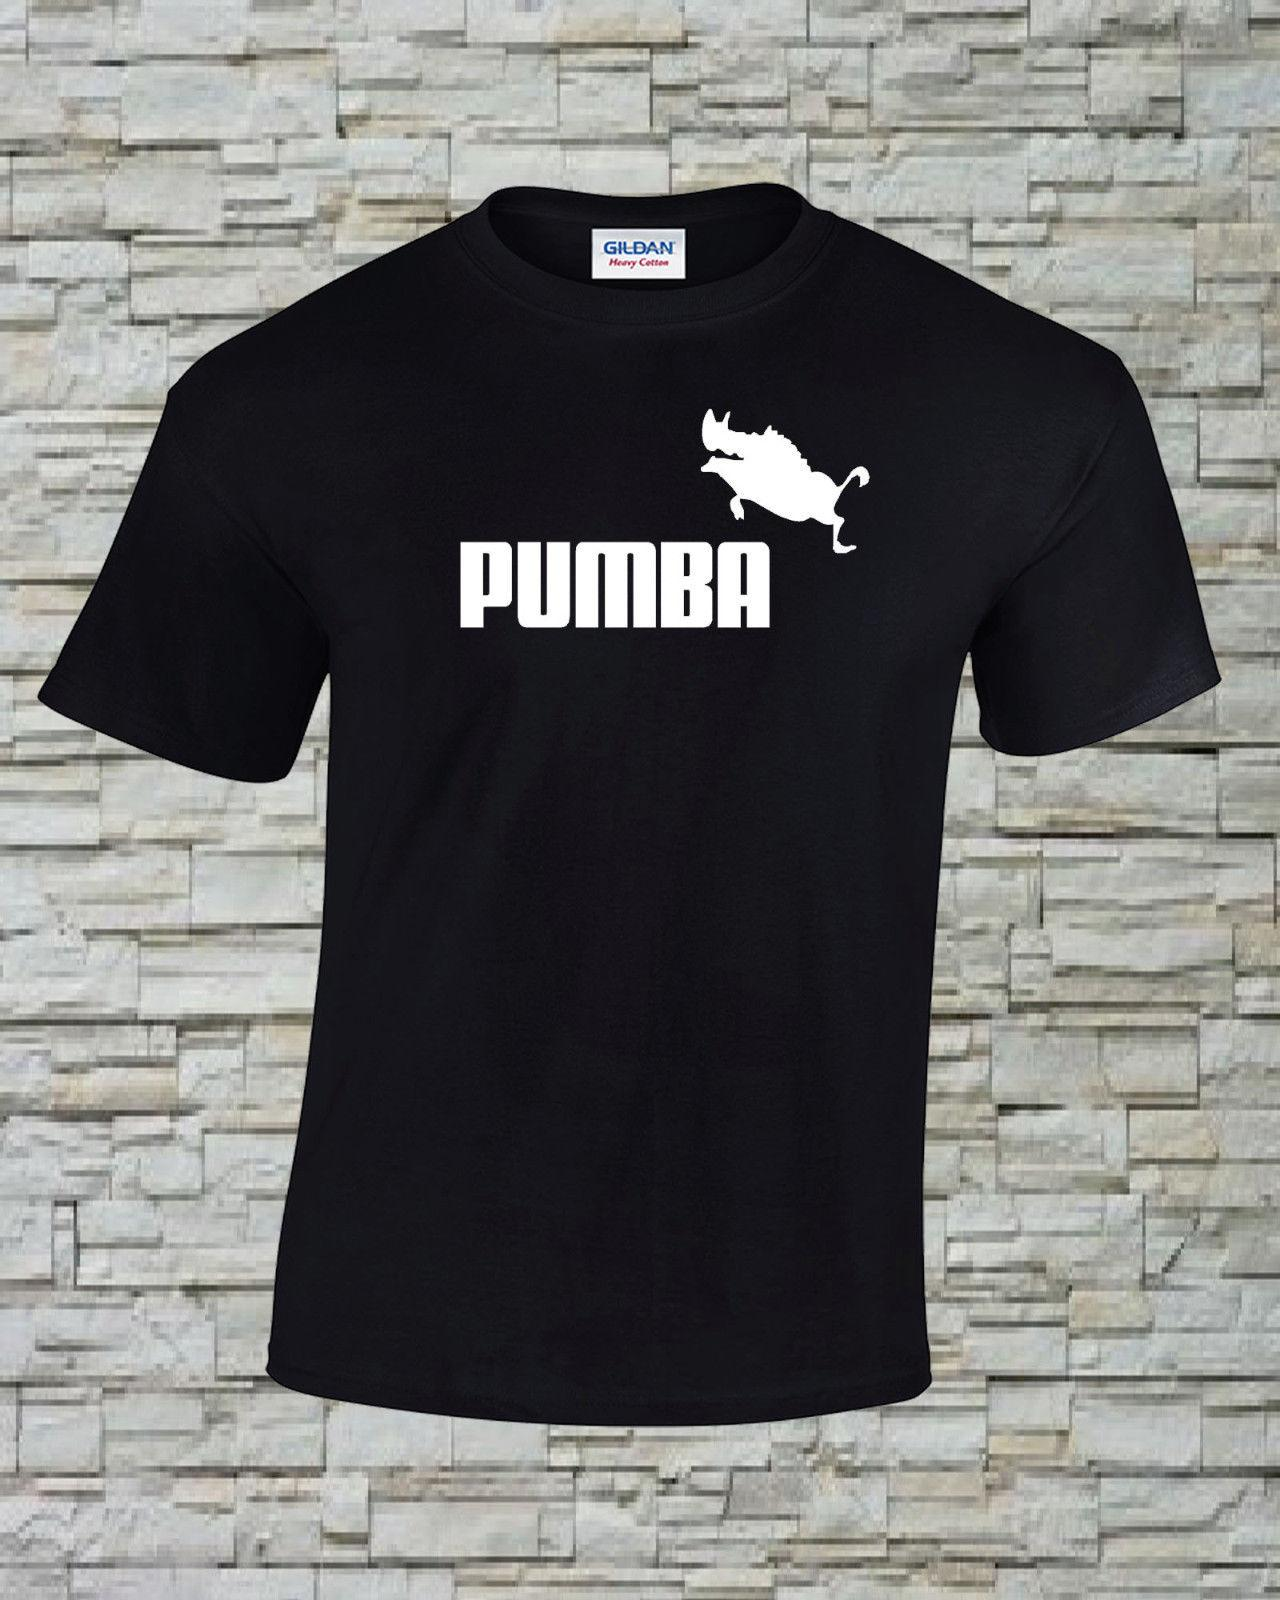 d36935c4d2f Pumba Funny Printed T Shirt Size, Print And Color Choice 2 Funny Unisex  Casual Tee Gift White Designer T Shirts Clever T Shirt From Buttonitbadges,  ...